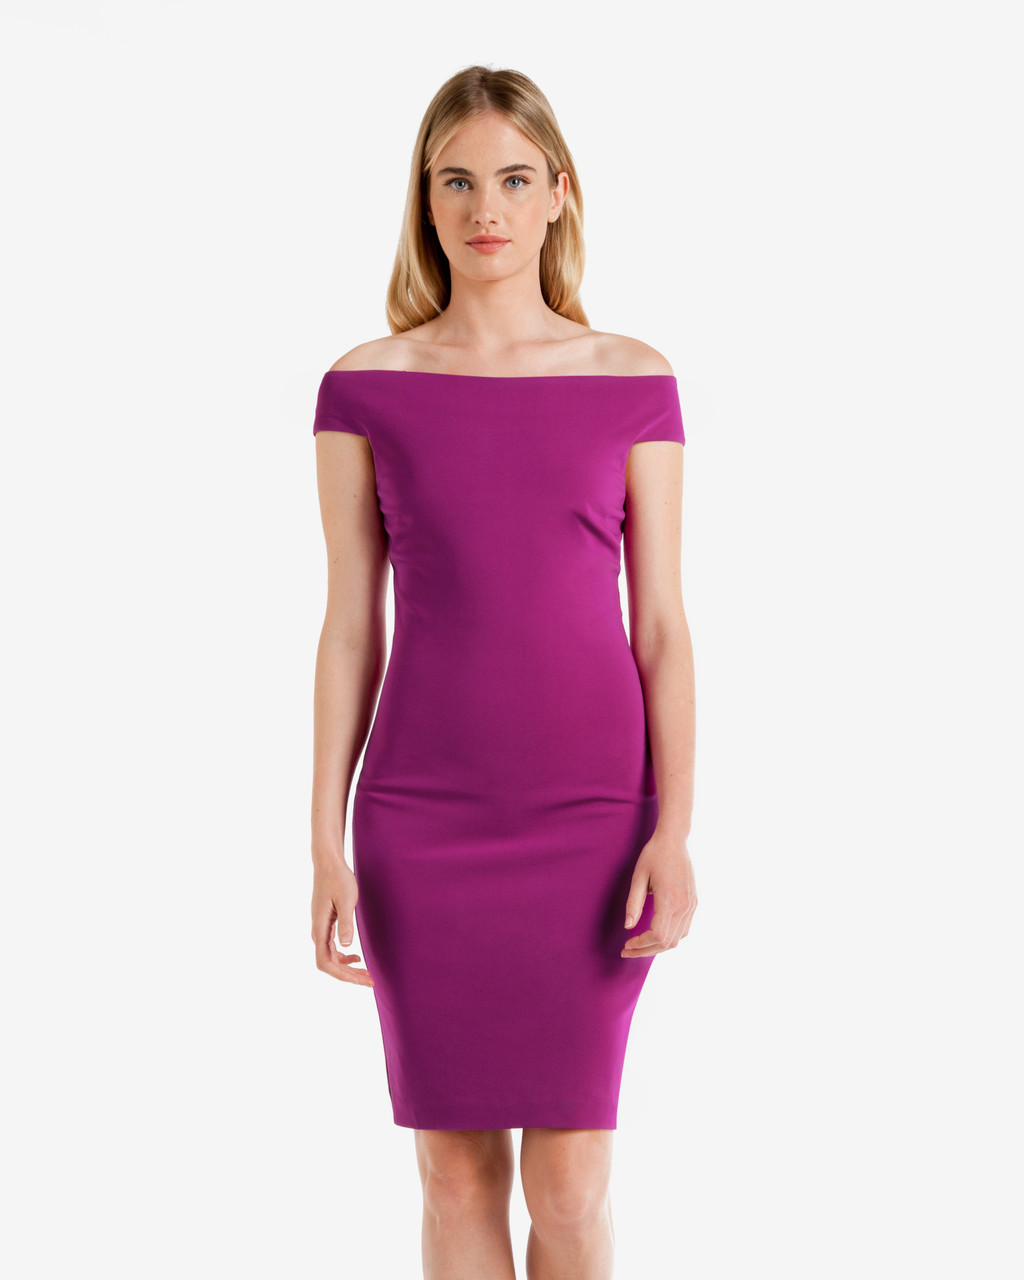 Bardot Neckline Bodycon Dress Pale Purple - neckline: off the shoulder; sleeve style: capped; fit: tight; pattern: plain; style: bodycon; predominant colour: purple; occasions: evening; length: just above the knee; fibres: viscose/rayon - stretch; sleeve length: short sleeve; texture group: jersey - clingy; pattern type: fabric; season: a/w 2016